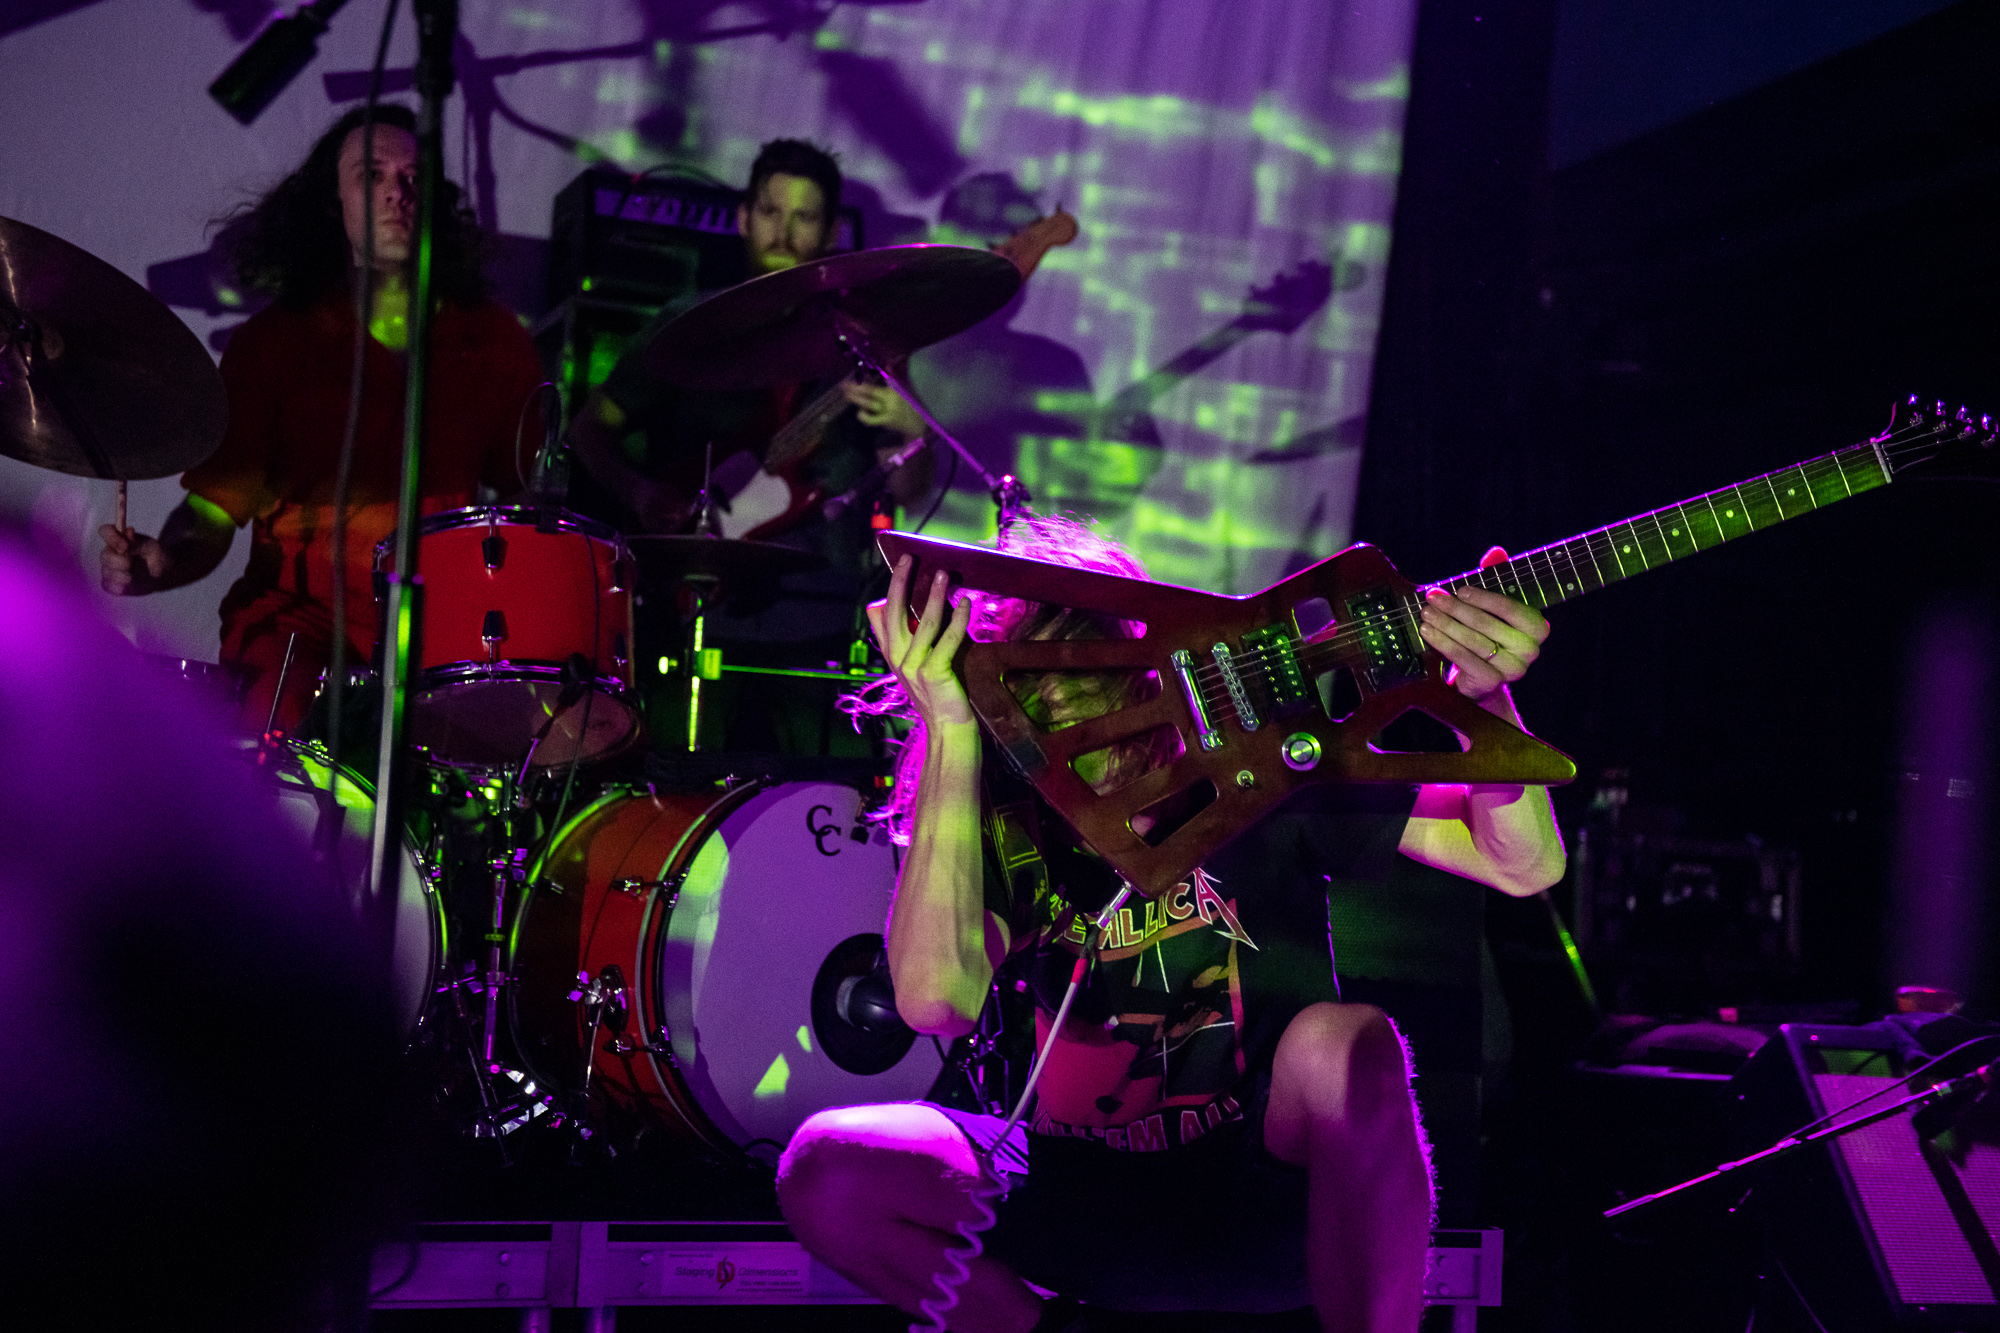 King Gizzard and the Lizard Wizard perform at the 9:30 Club in Washington, D.C.